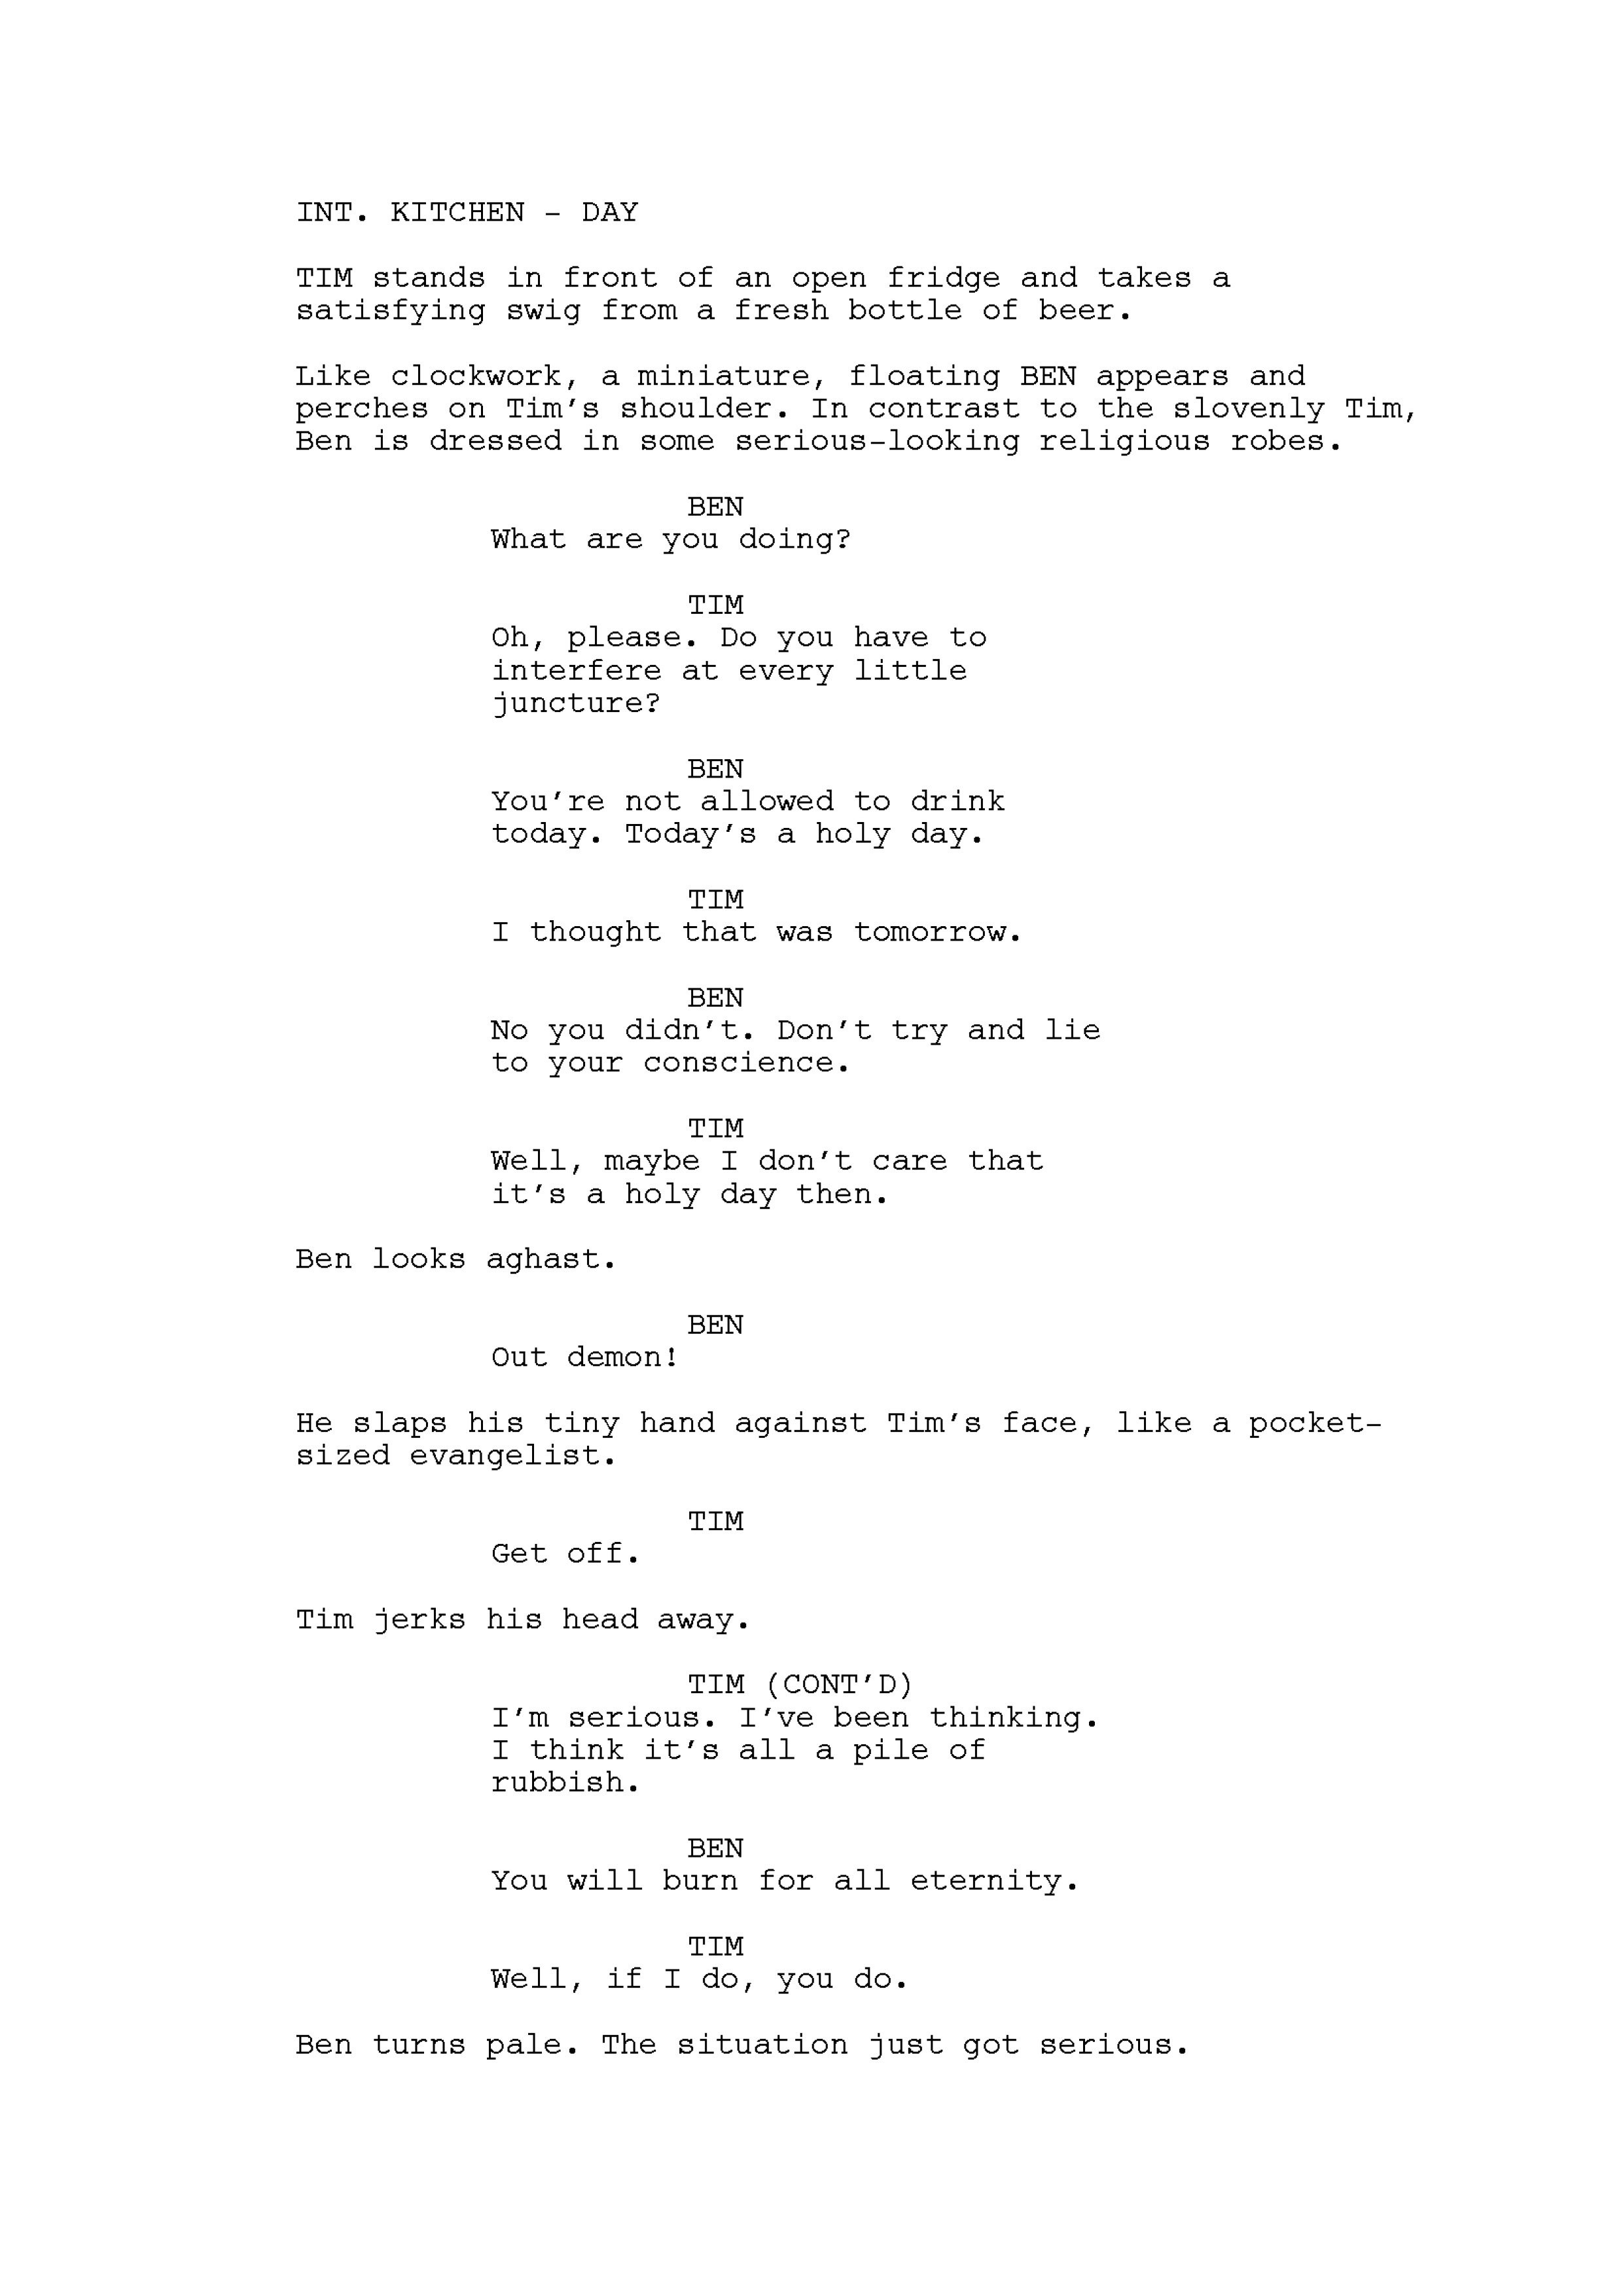 An excerpt from the script for 'Watch and Win' episode, 'The Conscience.' Written by me.